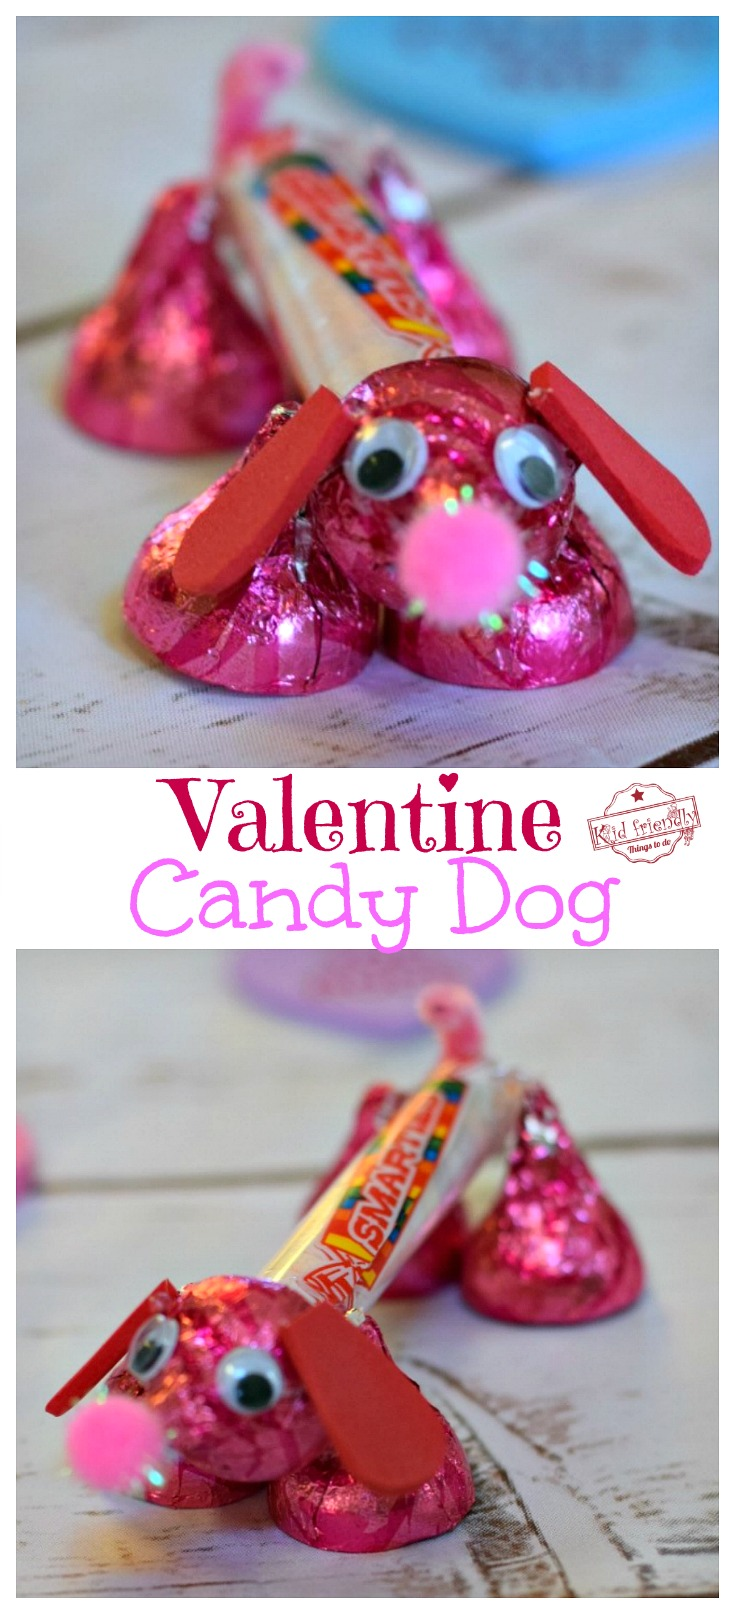 Make A Valentine's Candy Dog For A Fun Kid's Craft And Treat